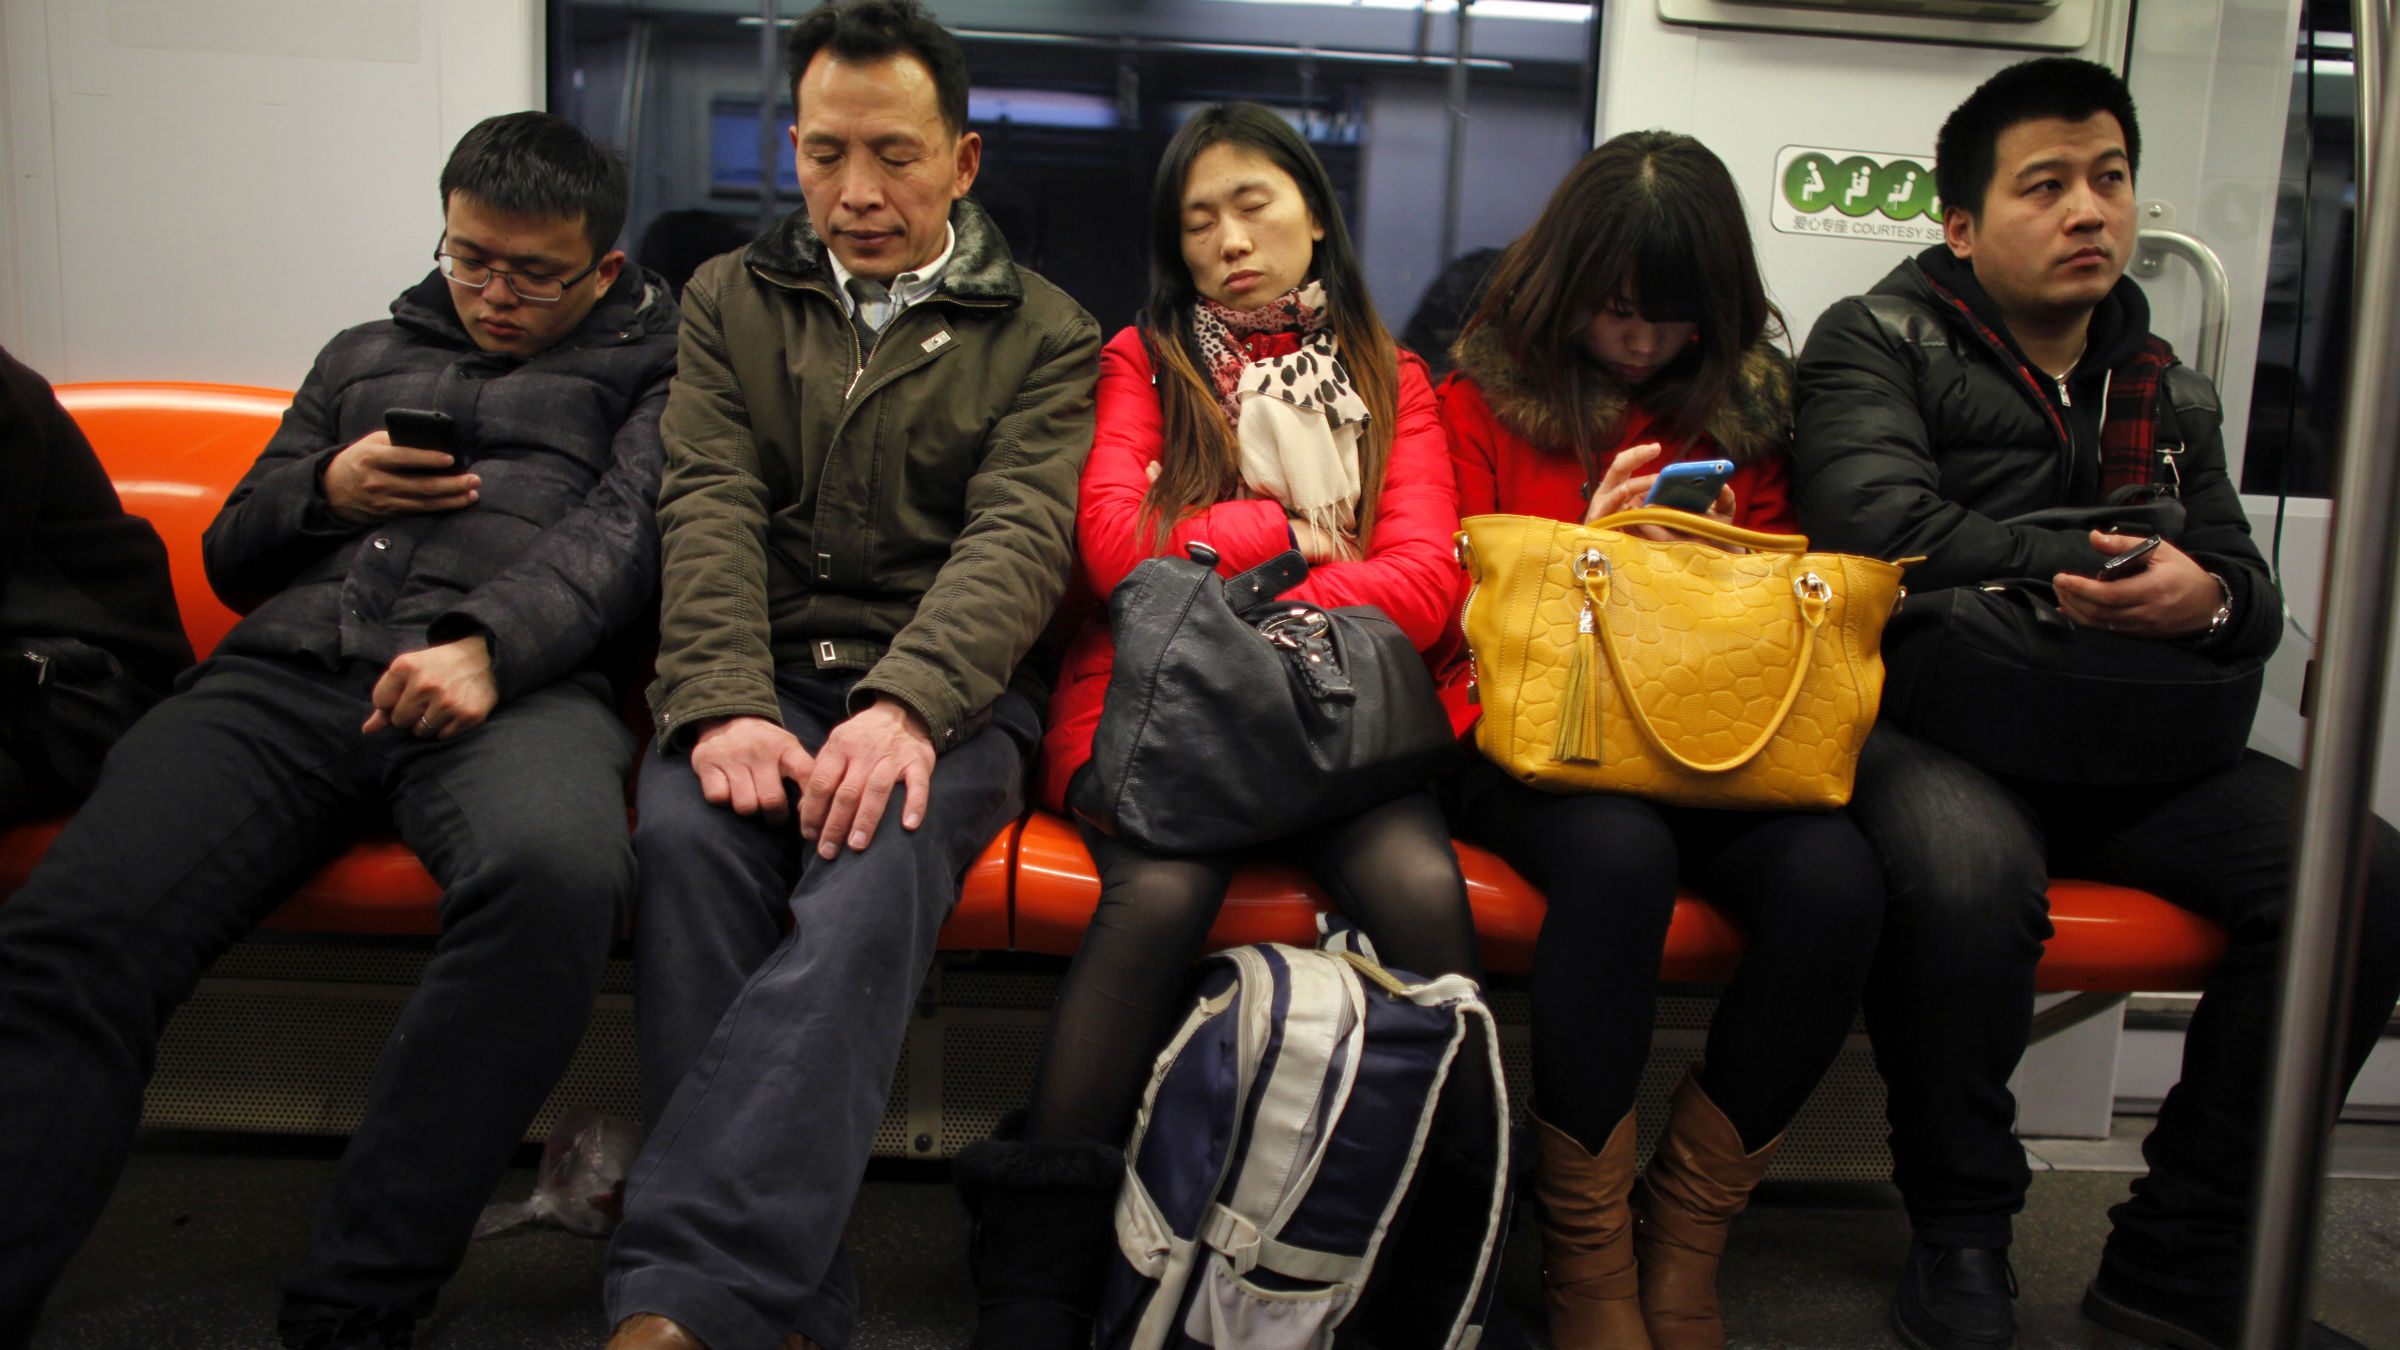 Shi Huaju (C) sleeps while riding the subway at the start of her annual trip for Spring Festival in Shanghai January 27, 2013. Like millions of migrant workers, Shi and her husband Li Anhua make the long trek home for the Chinese Spring Festival, travelling for 50 hours by train and bus during peak season to see their two children in Sichuan province after a long year of separation. Public transportation authorities expect about 3.41 billion train, flight and bus journeys to take place nationwide over the week-long Chinese New Year holiday. Picture taken January 27, 2013.